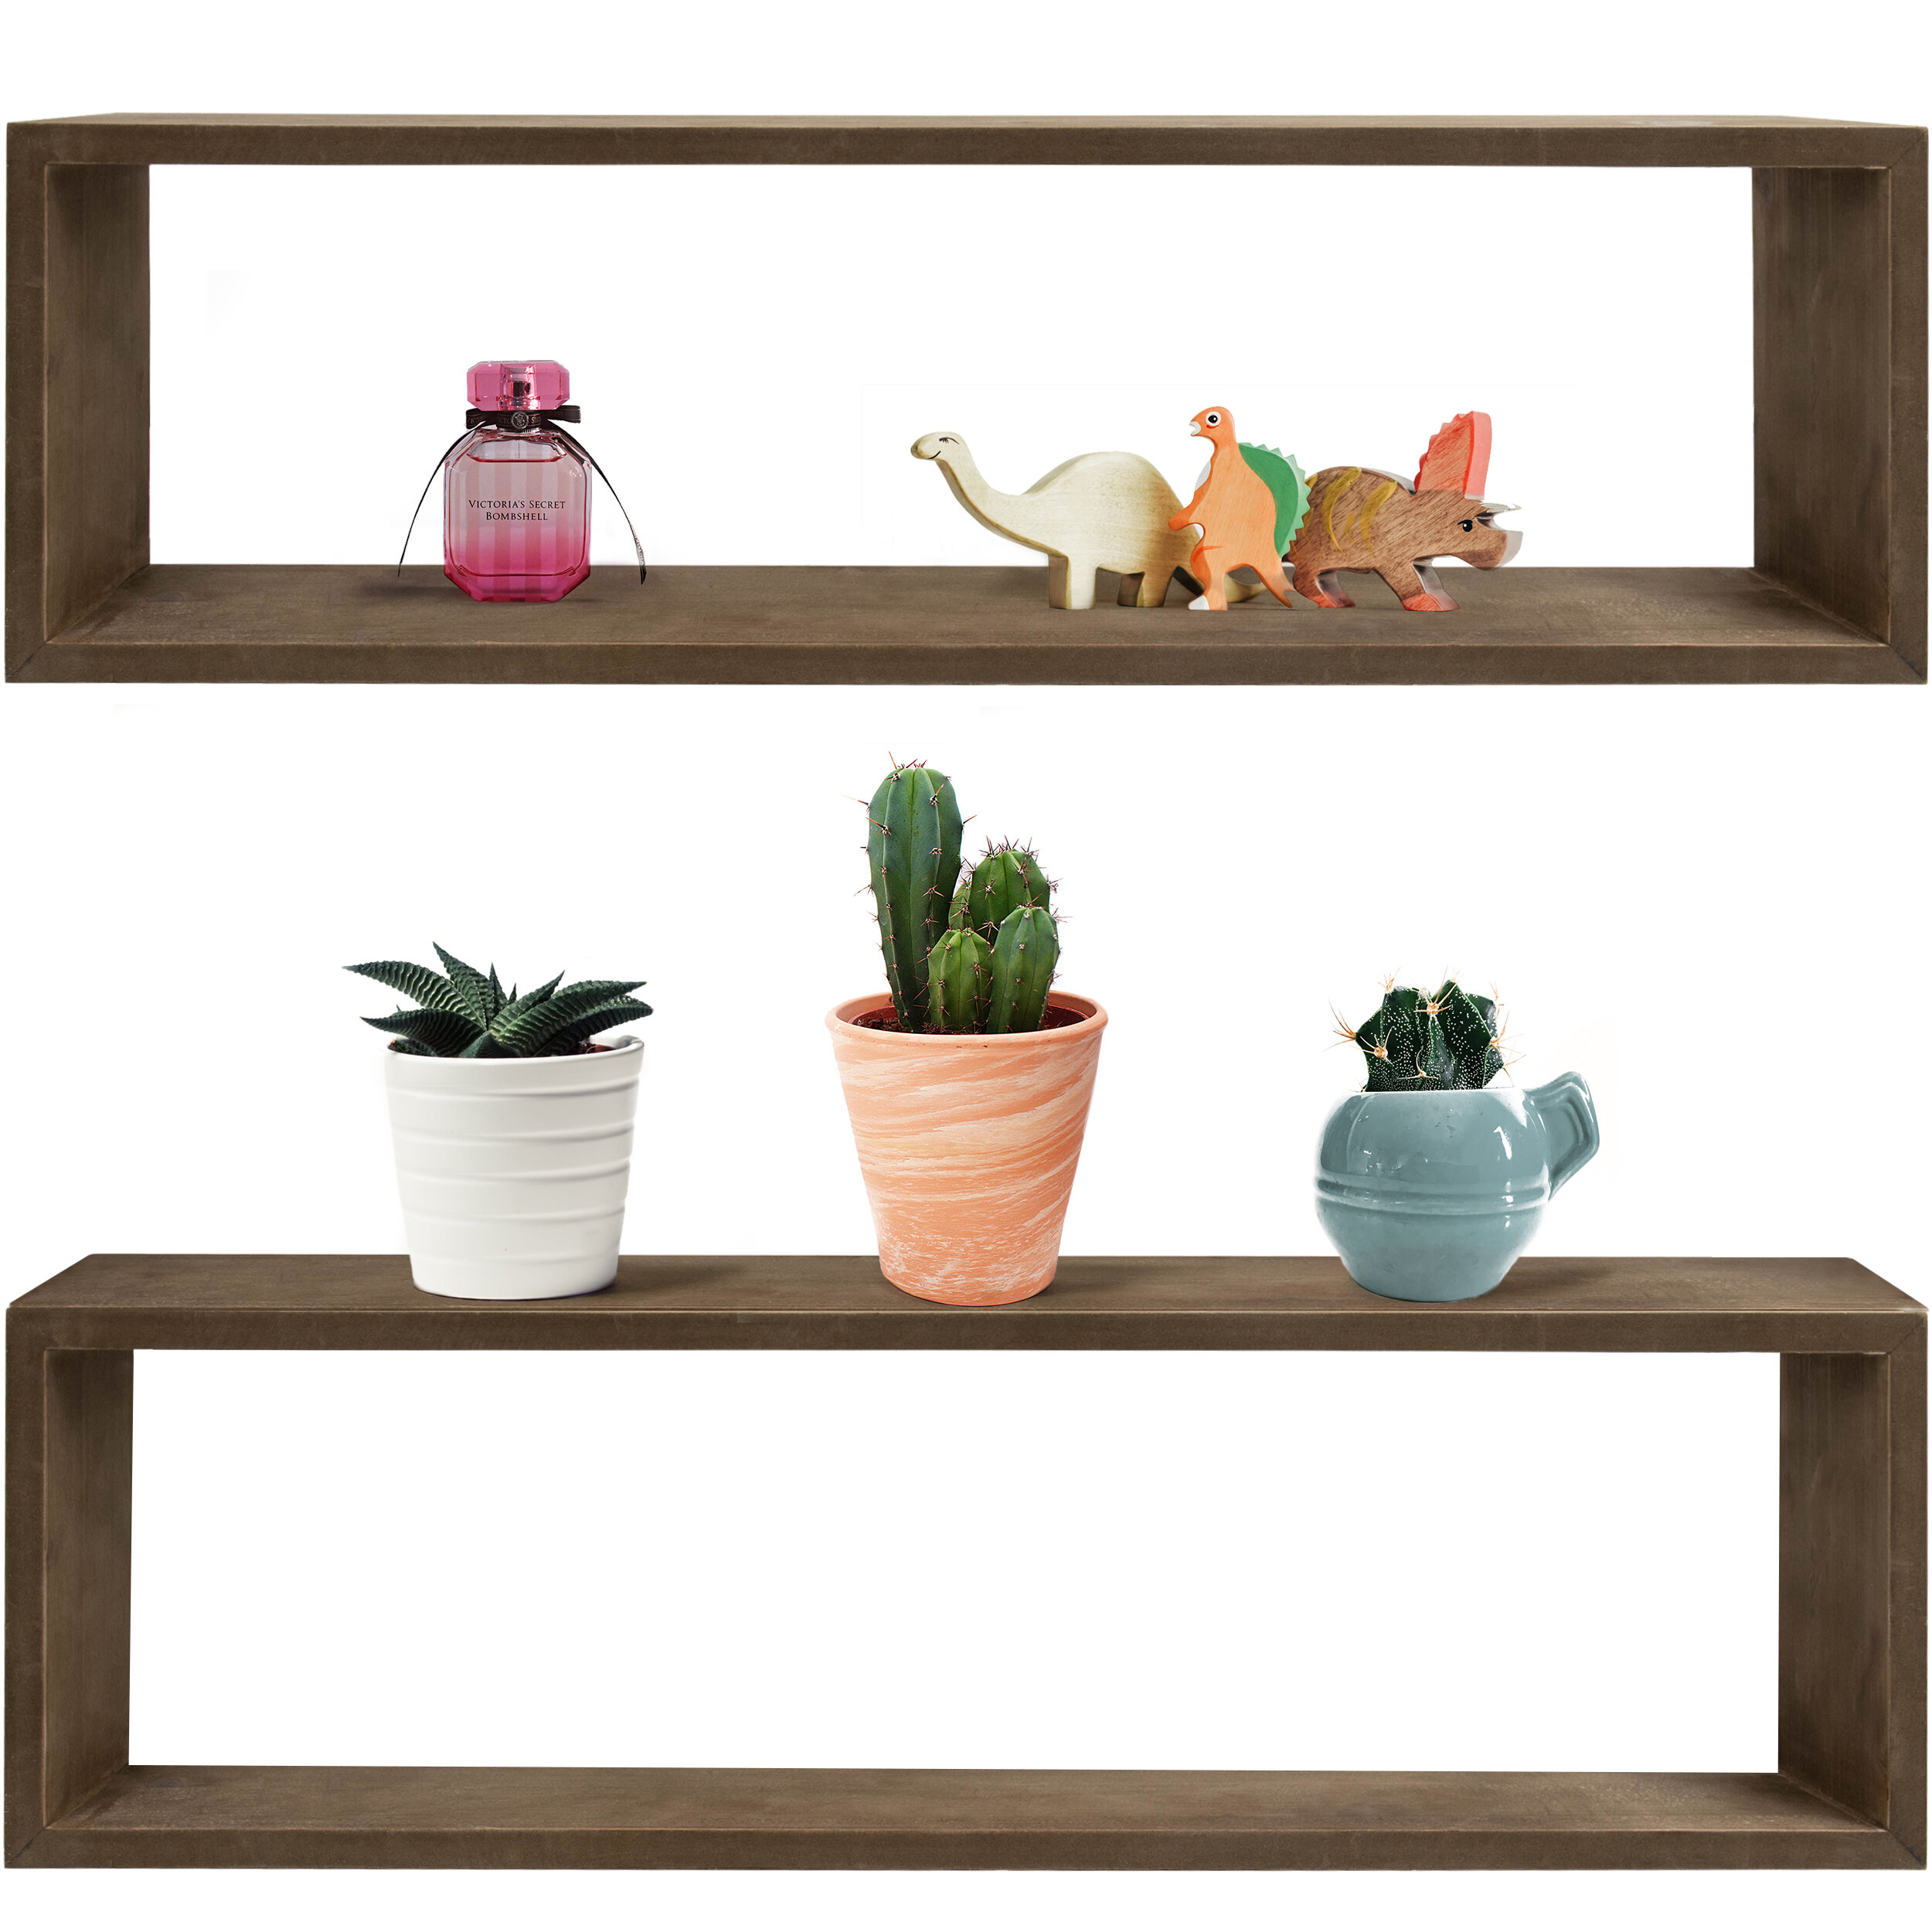 Set Of 8 Floating Shelves Wall Mounted,Rustic Wood Wall Shelves, Great For  Home, Office,Bedroom, Bathroom, Living Room, Kitchen Decorative,84 Inch